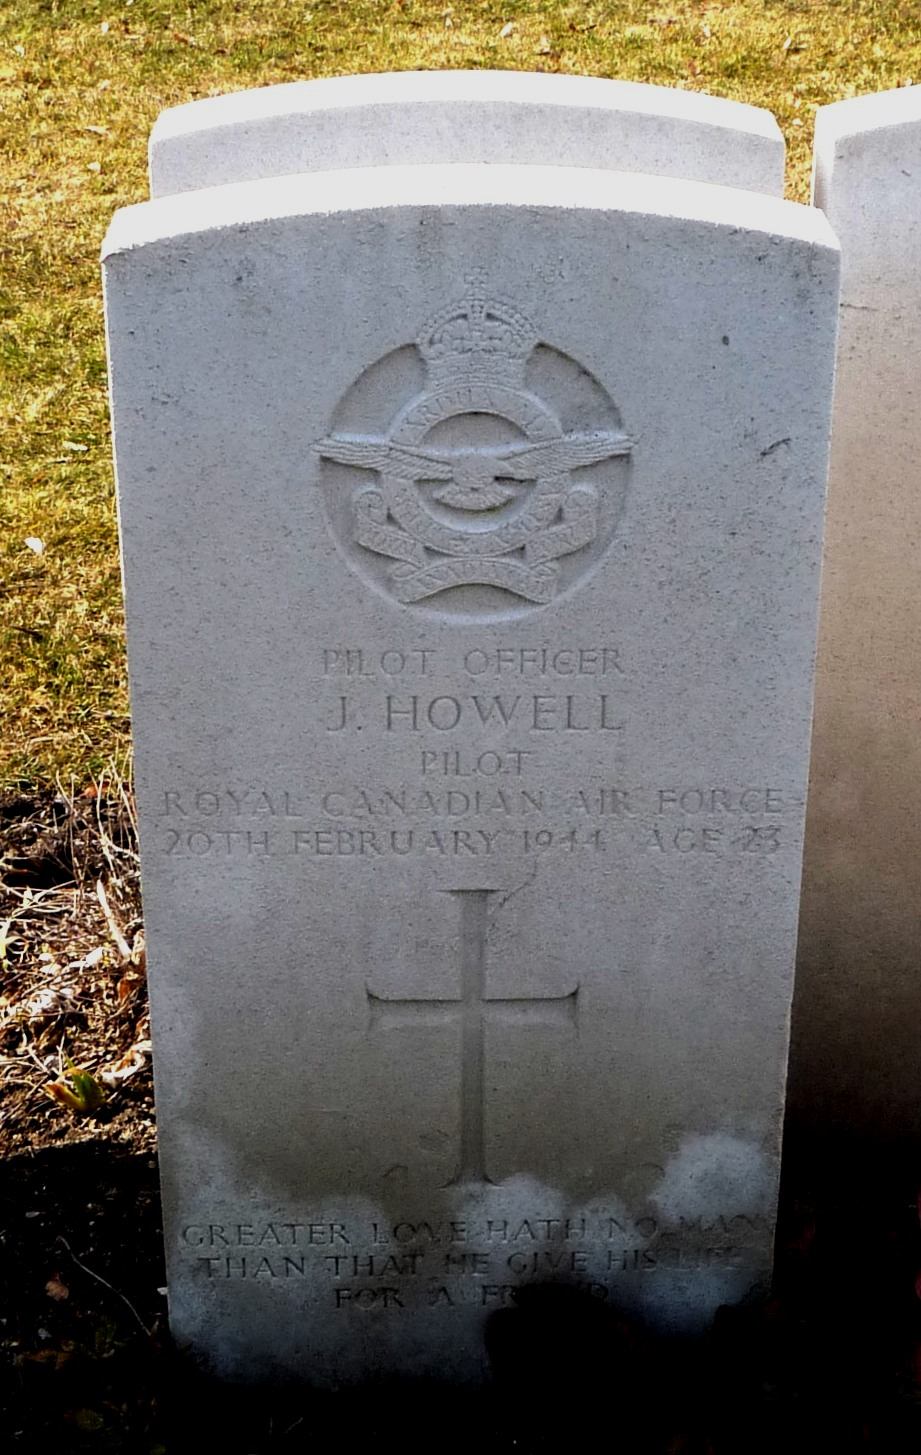 The headstone of Pilot Officer James Howell at the Berlin War Cemetery.  Standard headstones such as this, bearing the badge of the armed force with which the individual served, are used at cemeteries overseas and in Canada. PHOTO: Uwe Jenrich via internet